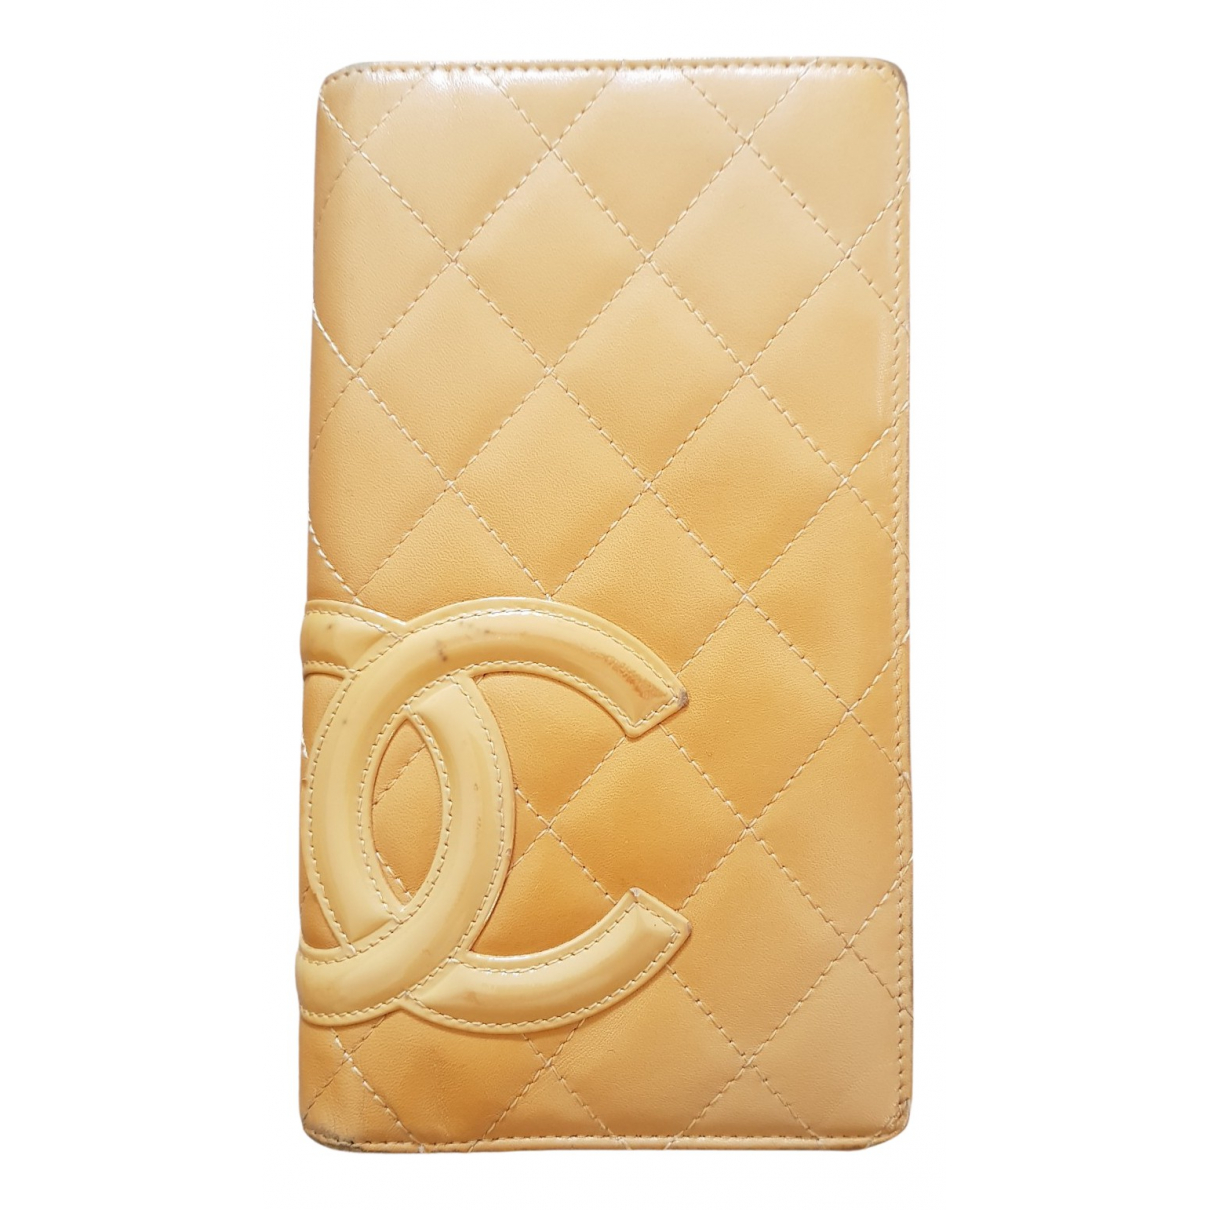 Chanel Cambon Beige Patent leather wallet for Women N